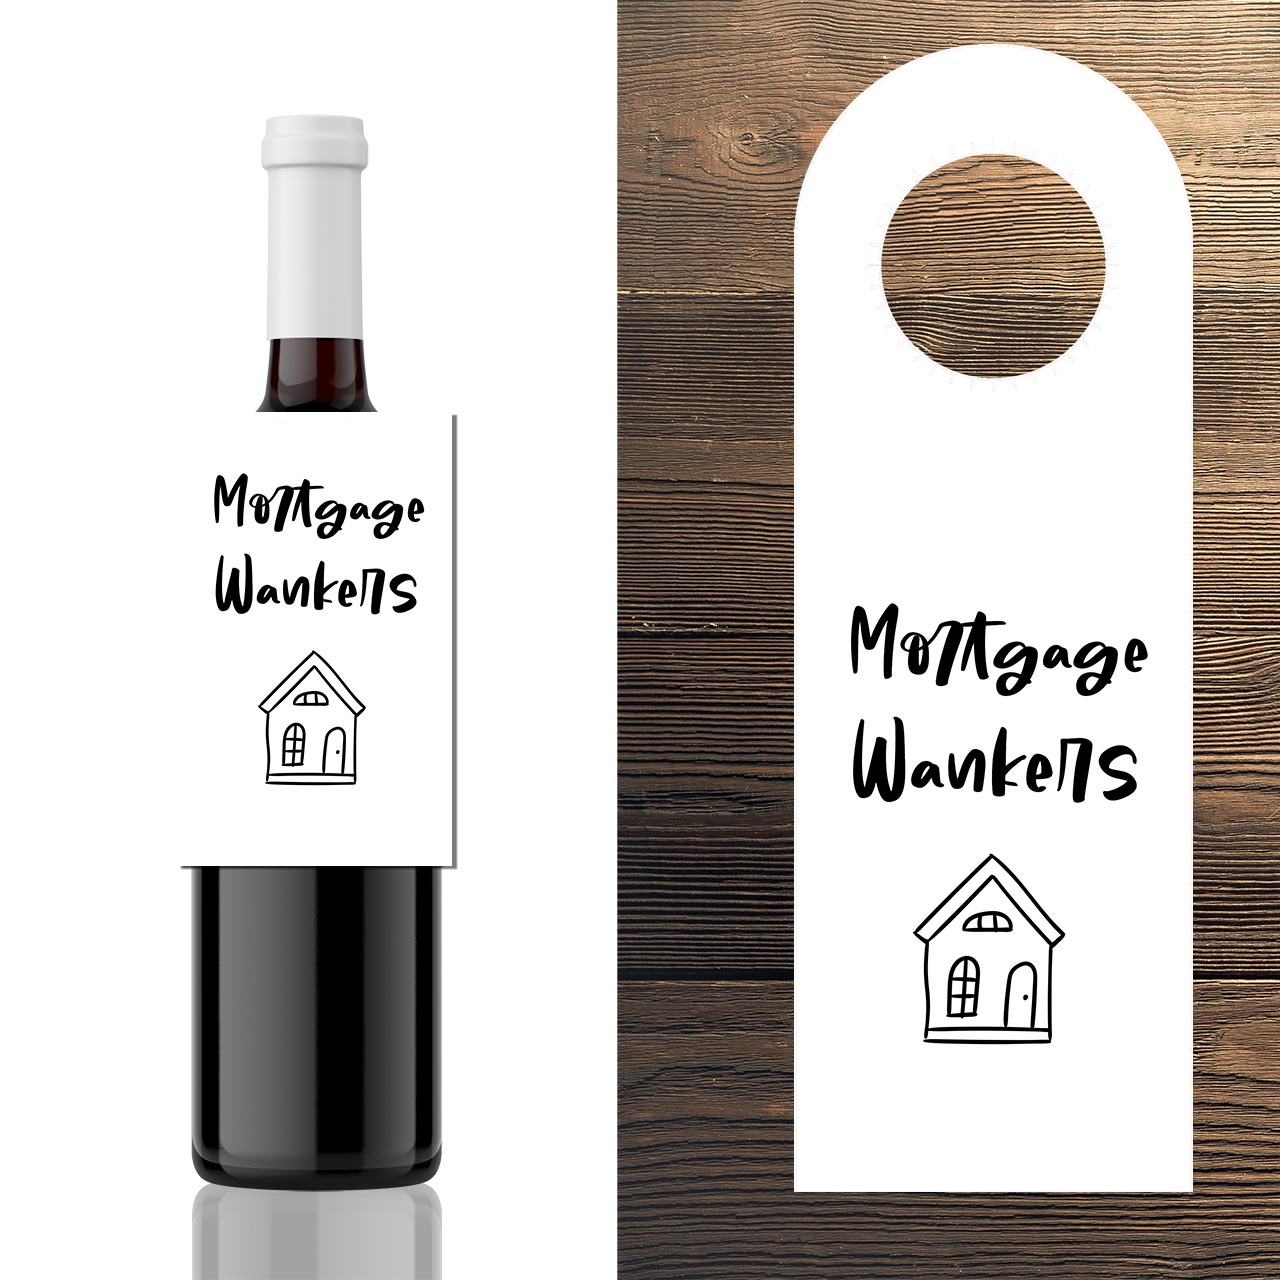 3x House Warming Wine bottle hang gift Label -  Mortgage Wankers